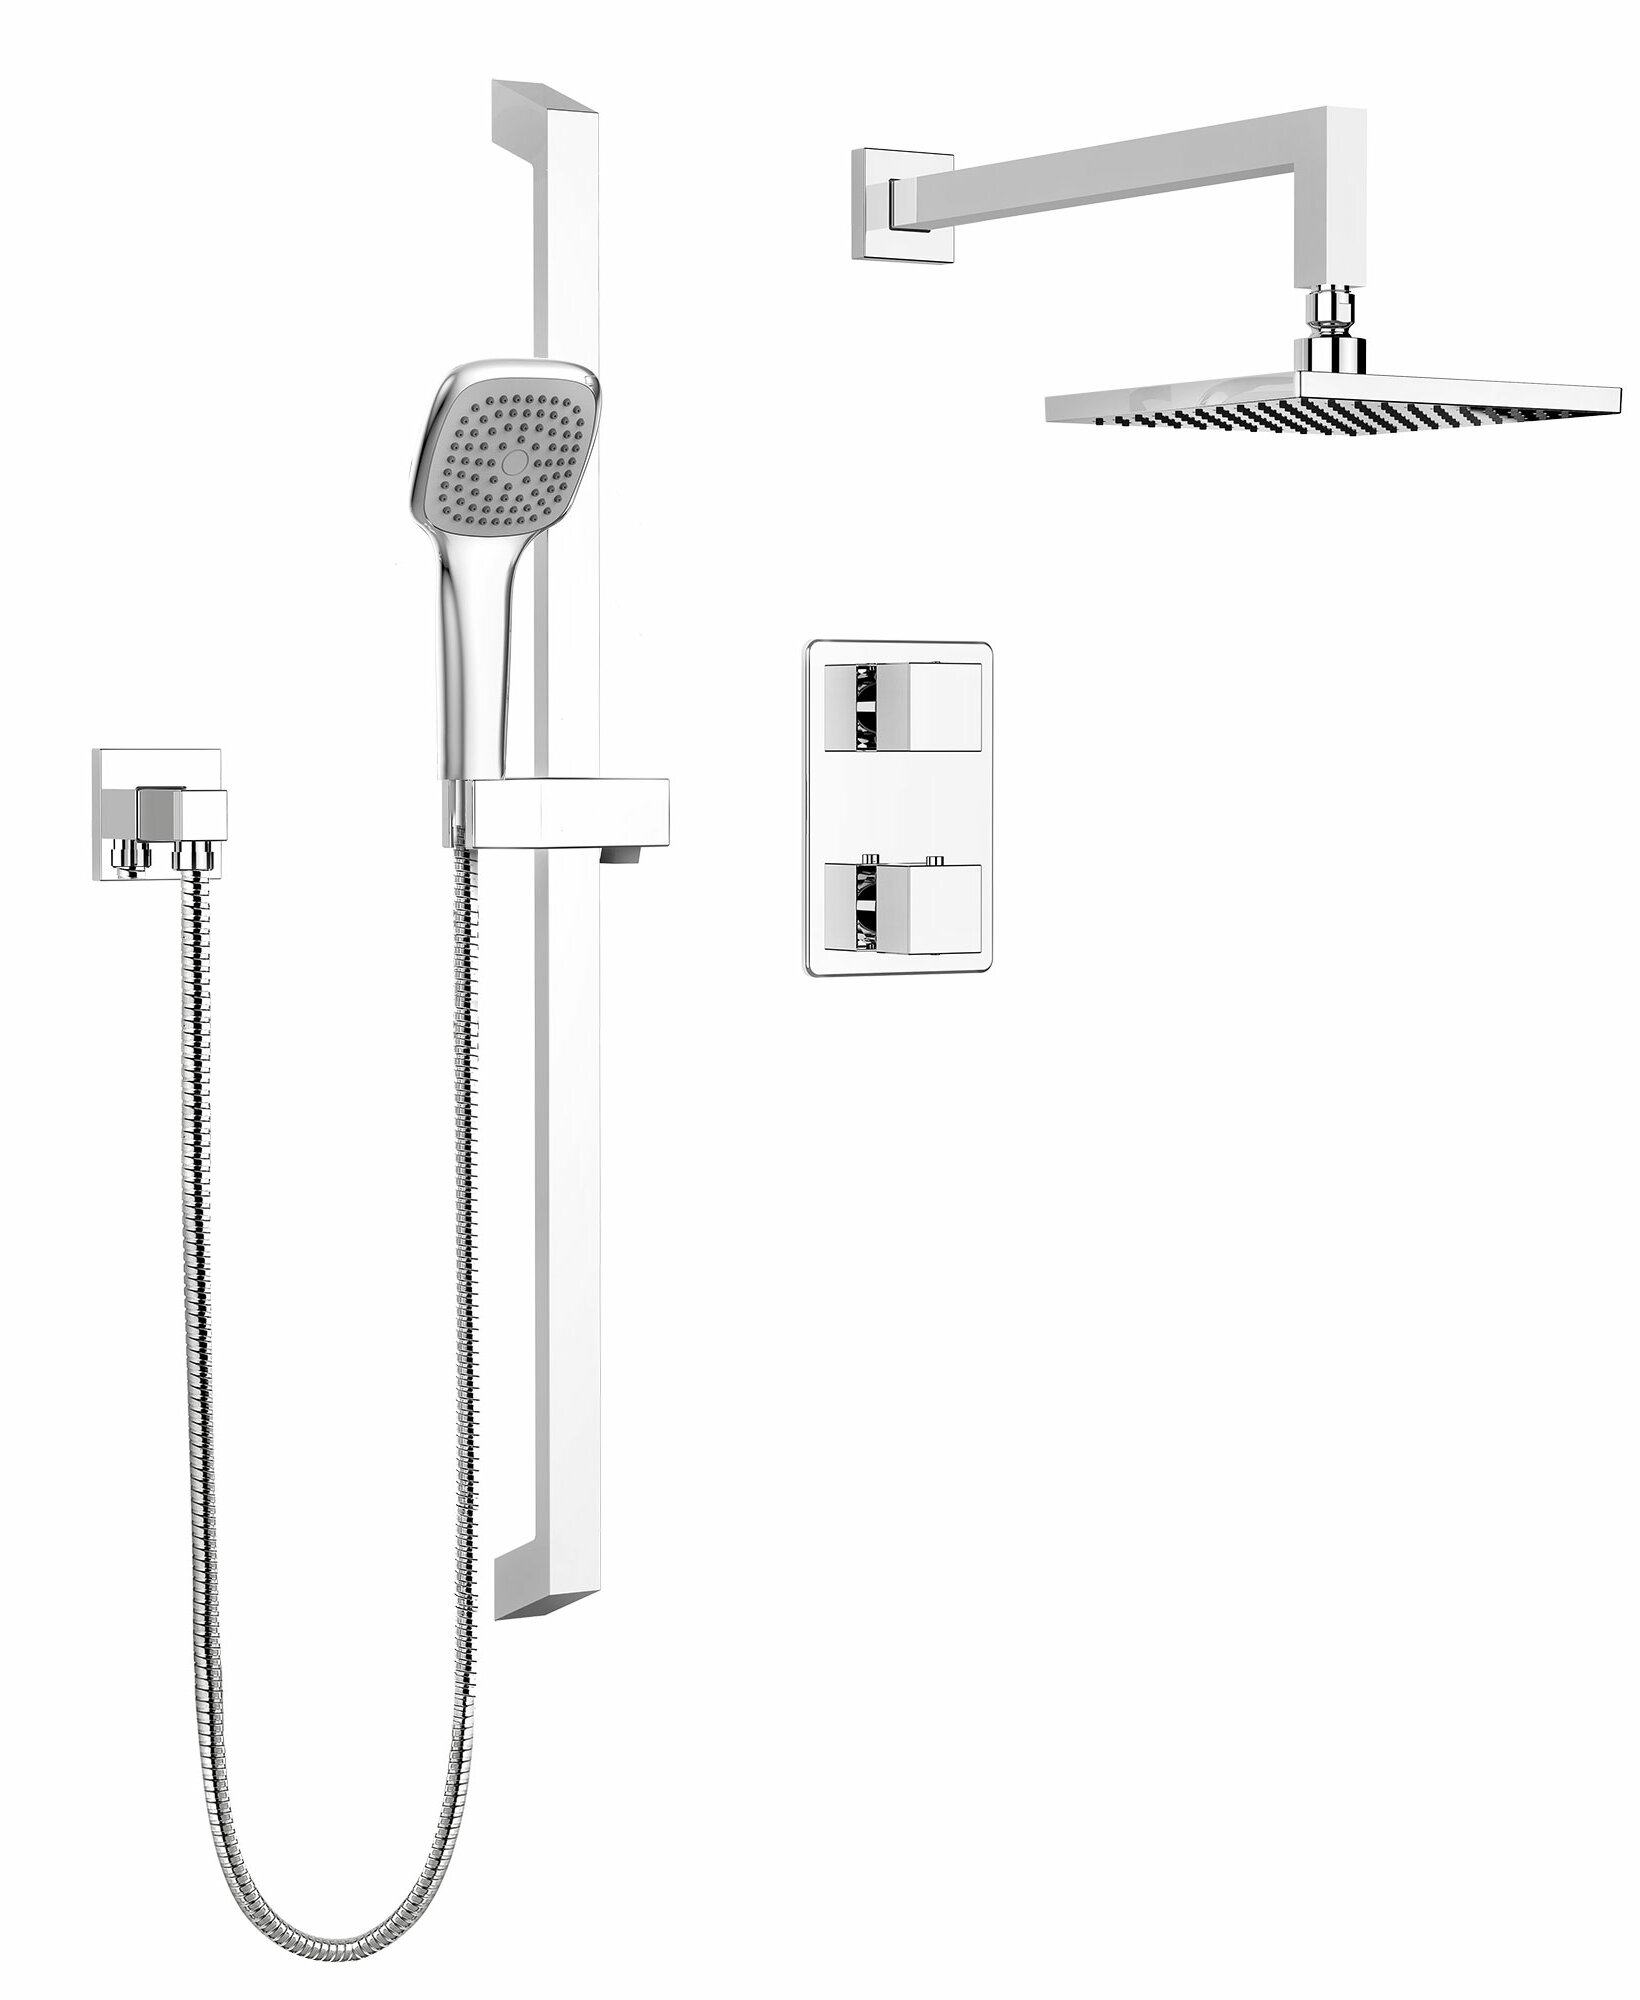 Keeney Manufacturing Company Stylish Square Faucet Dual Function Dual Shower  Head Complete Shower System U0026 Reviews | Wayfair